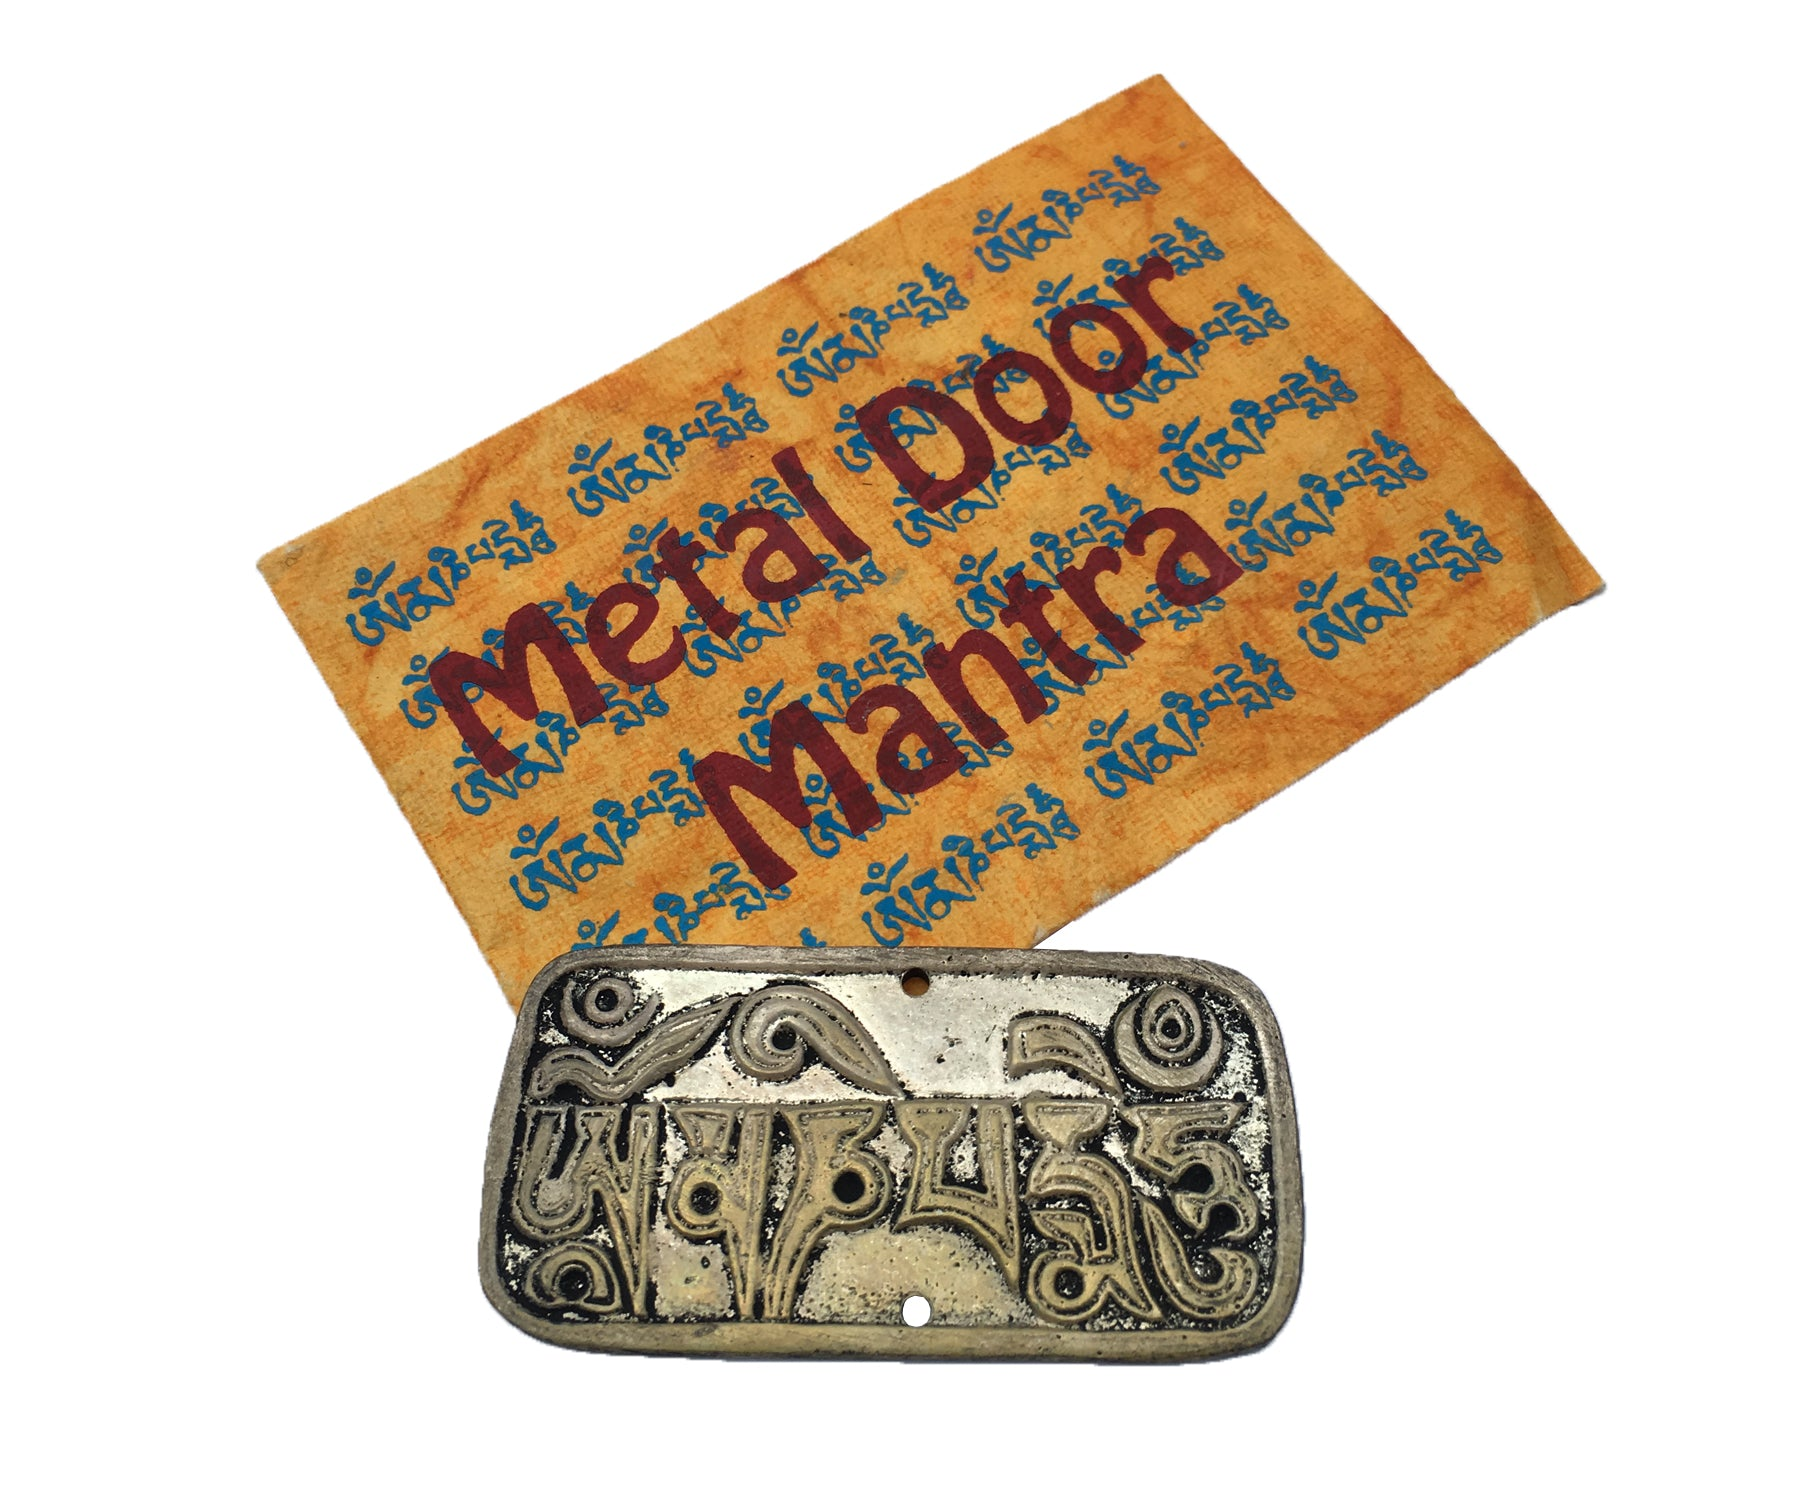 METAL DOOR MANTRA